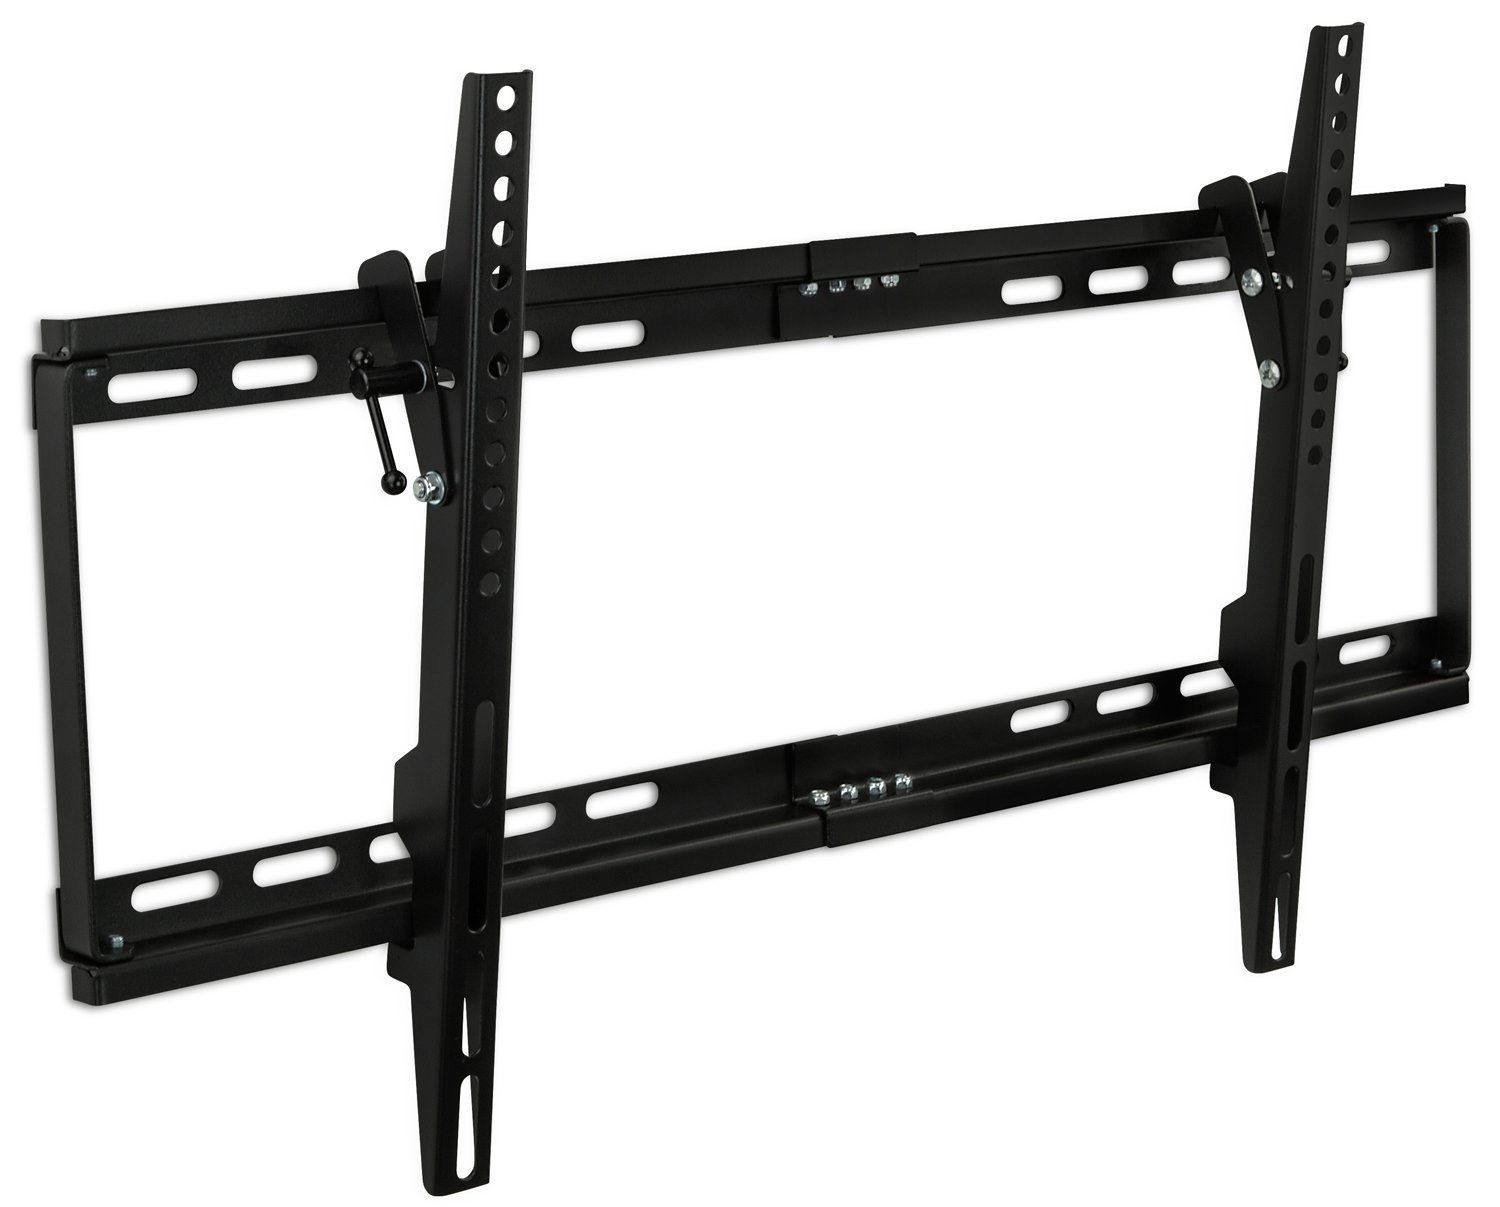 "Mount-It! MI-1121M Slim Tilt TV Wall Mount Bracket for LED LCD Plasma Flat Screen Panels for 32"" to 65"" (Many from 20-75"") up to VESA 600 x 400 and 130 lbs Low Profile. 0-15 Degree Forward Adjustable Tilting Including 6 ft HDMI Cable and Leveling Bubble Fits Samsung, Sony, LG Sharp, Insignia,"